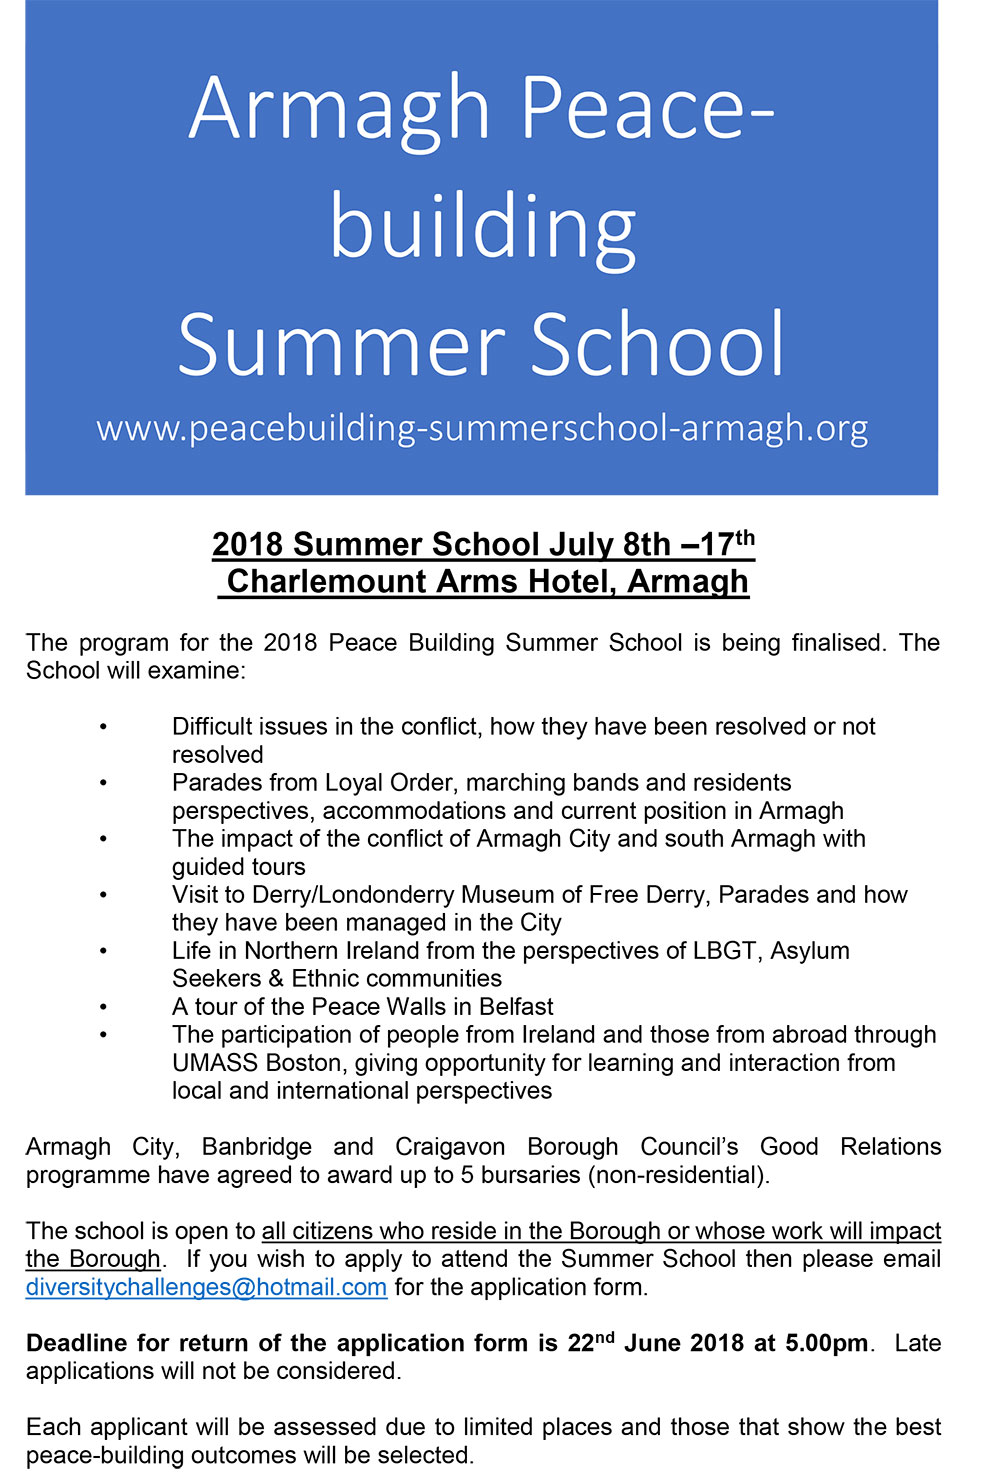 Flyer for Armagh Summer School 2018